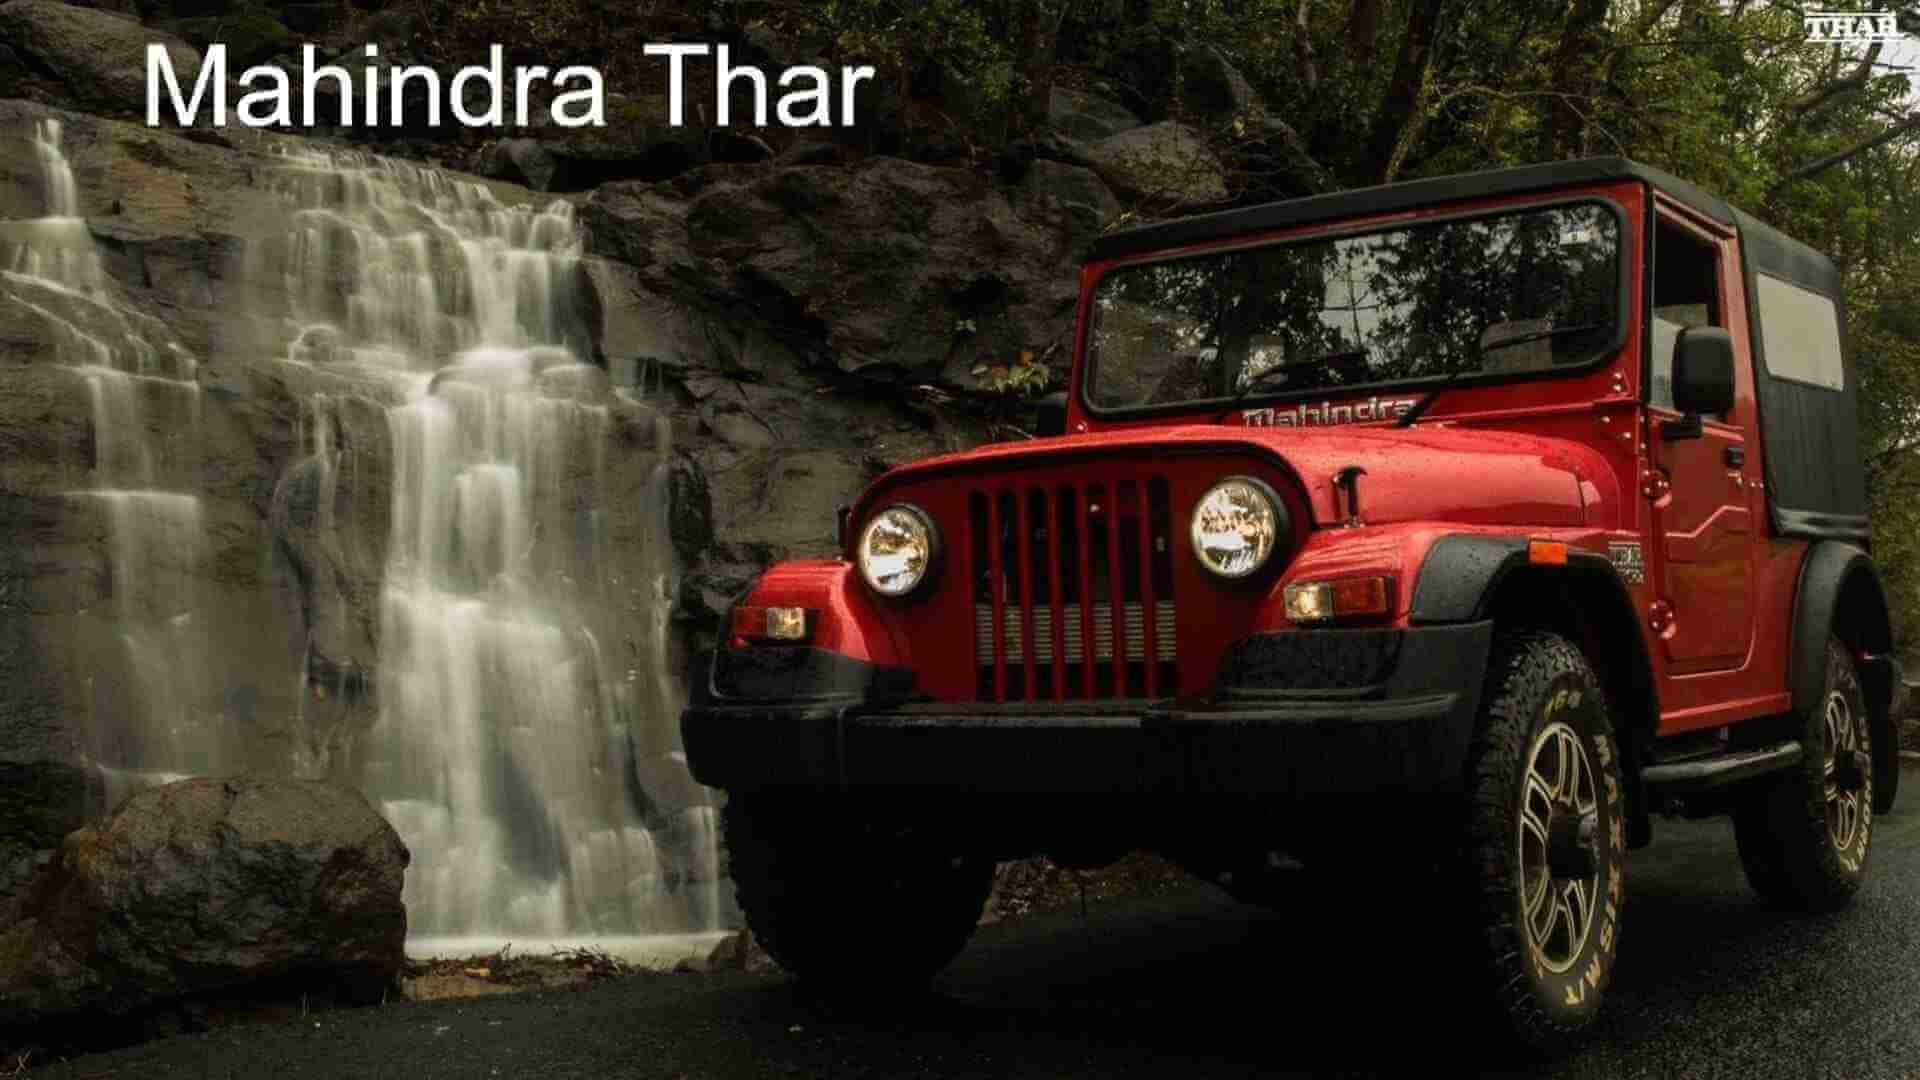 The Mahindra Thar 5-door SUV is confirmed; it will start between 2023 and 2025